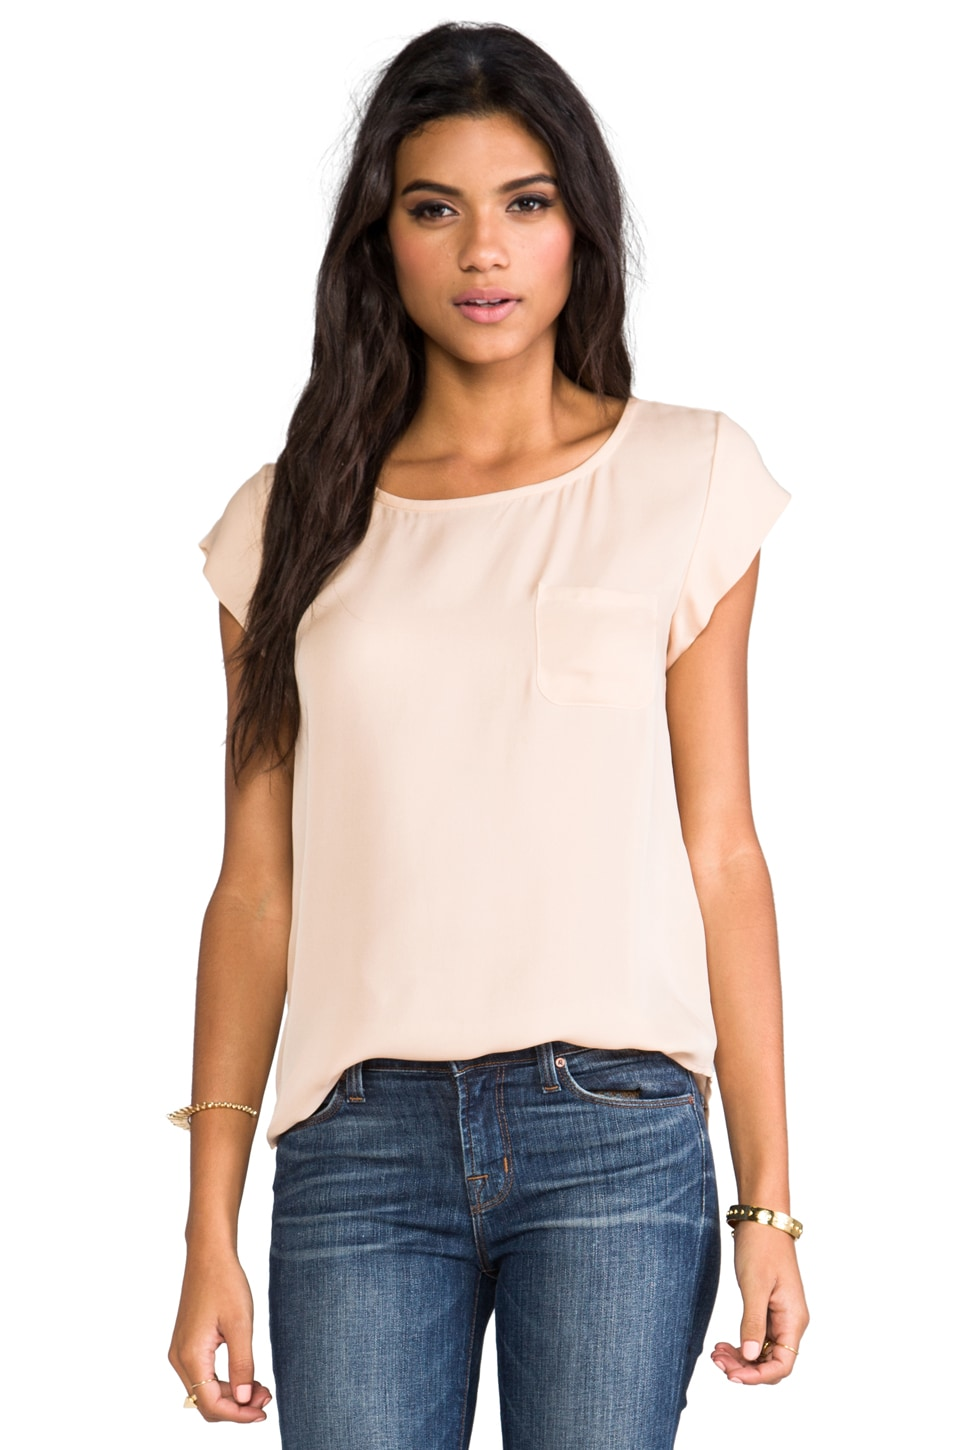 Joie Rancher Top in Dusty Pink Sand